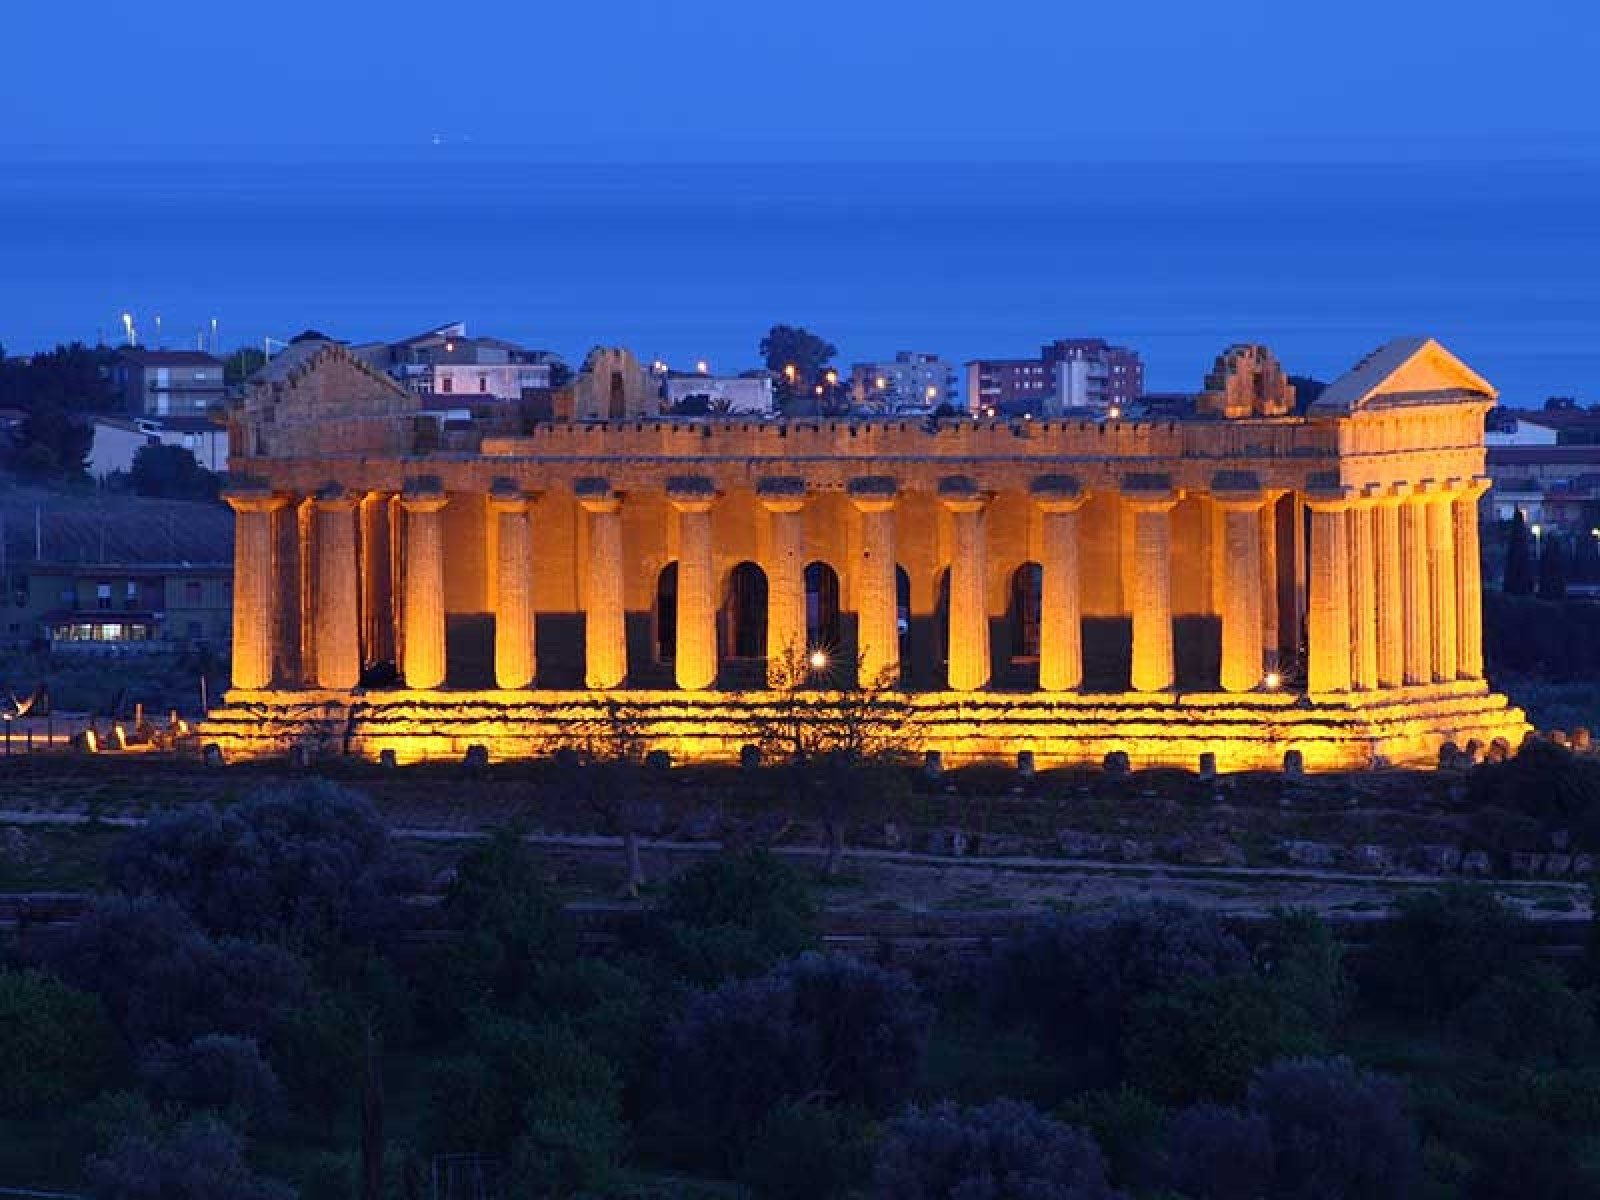 Valley of the temples Sicily: hours, prices, maps and visitor information